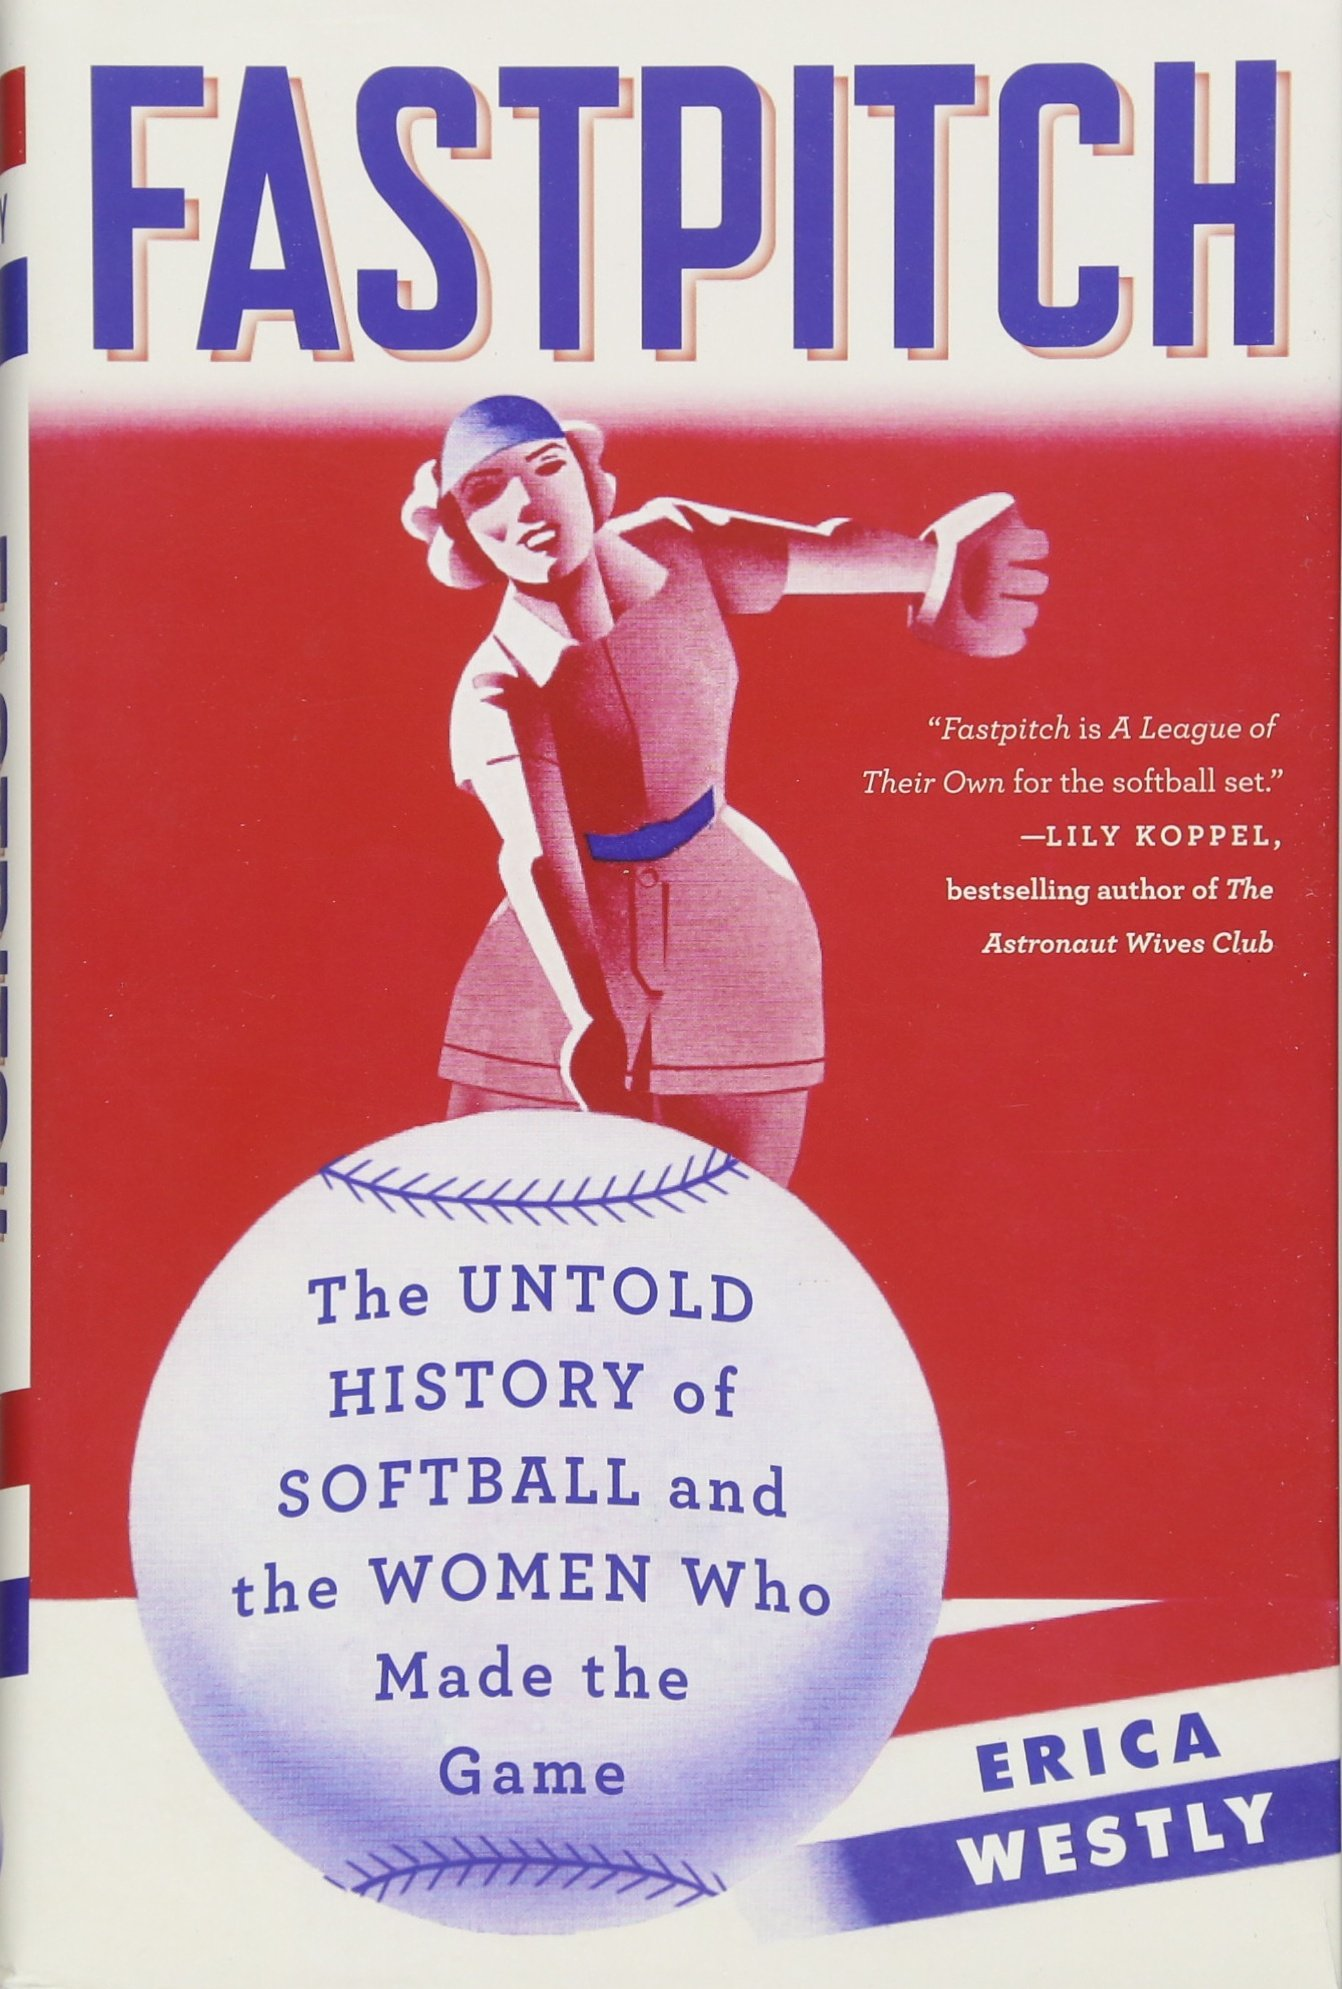 Fastpitch: The Untold History of Softball and the Women Who Made the Game by Touchstone